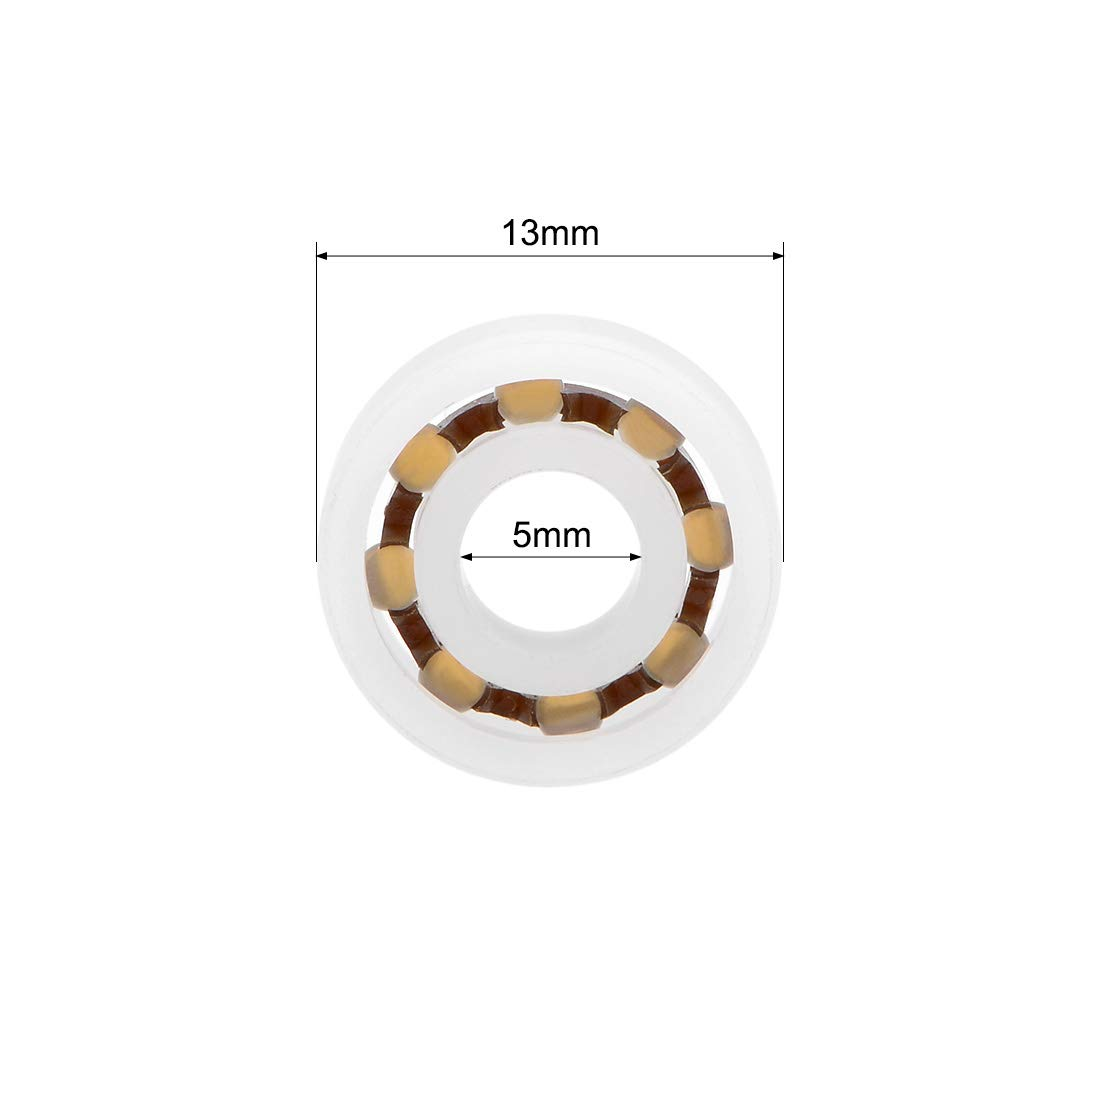 uxcell/® 695 POM Plastic Bearings 5x13x4mm Glass Ball Nylon Cage Pack of 5